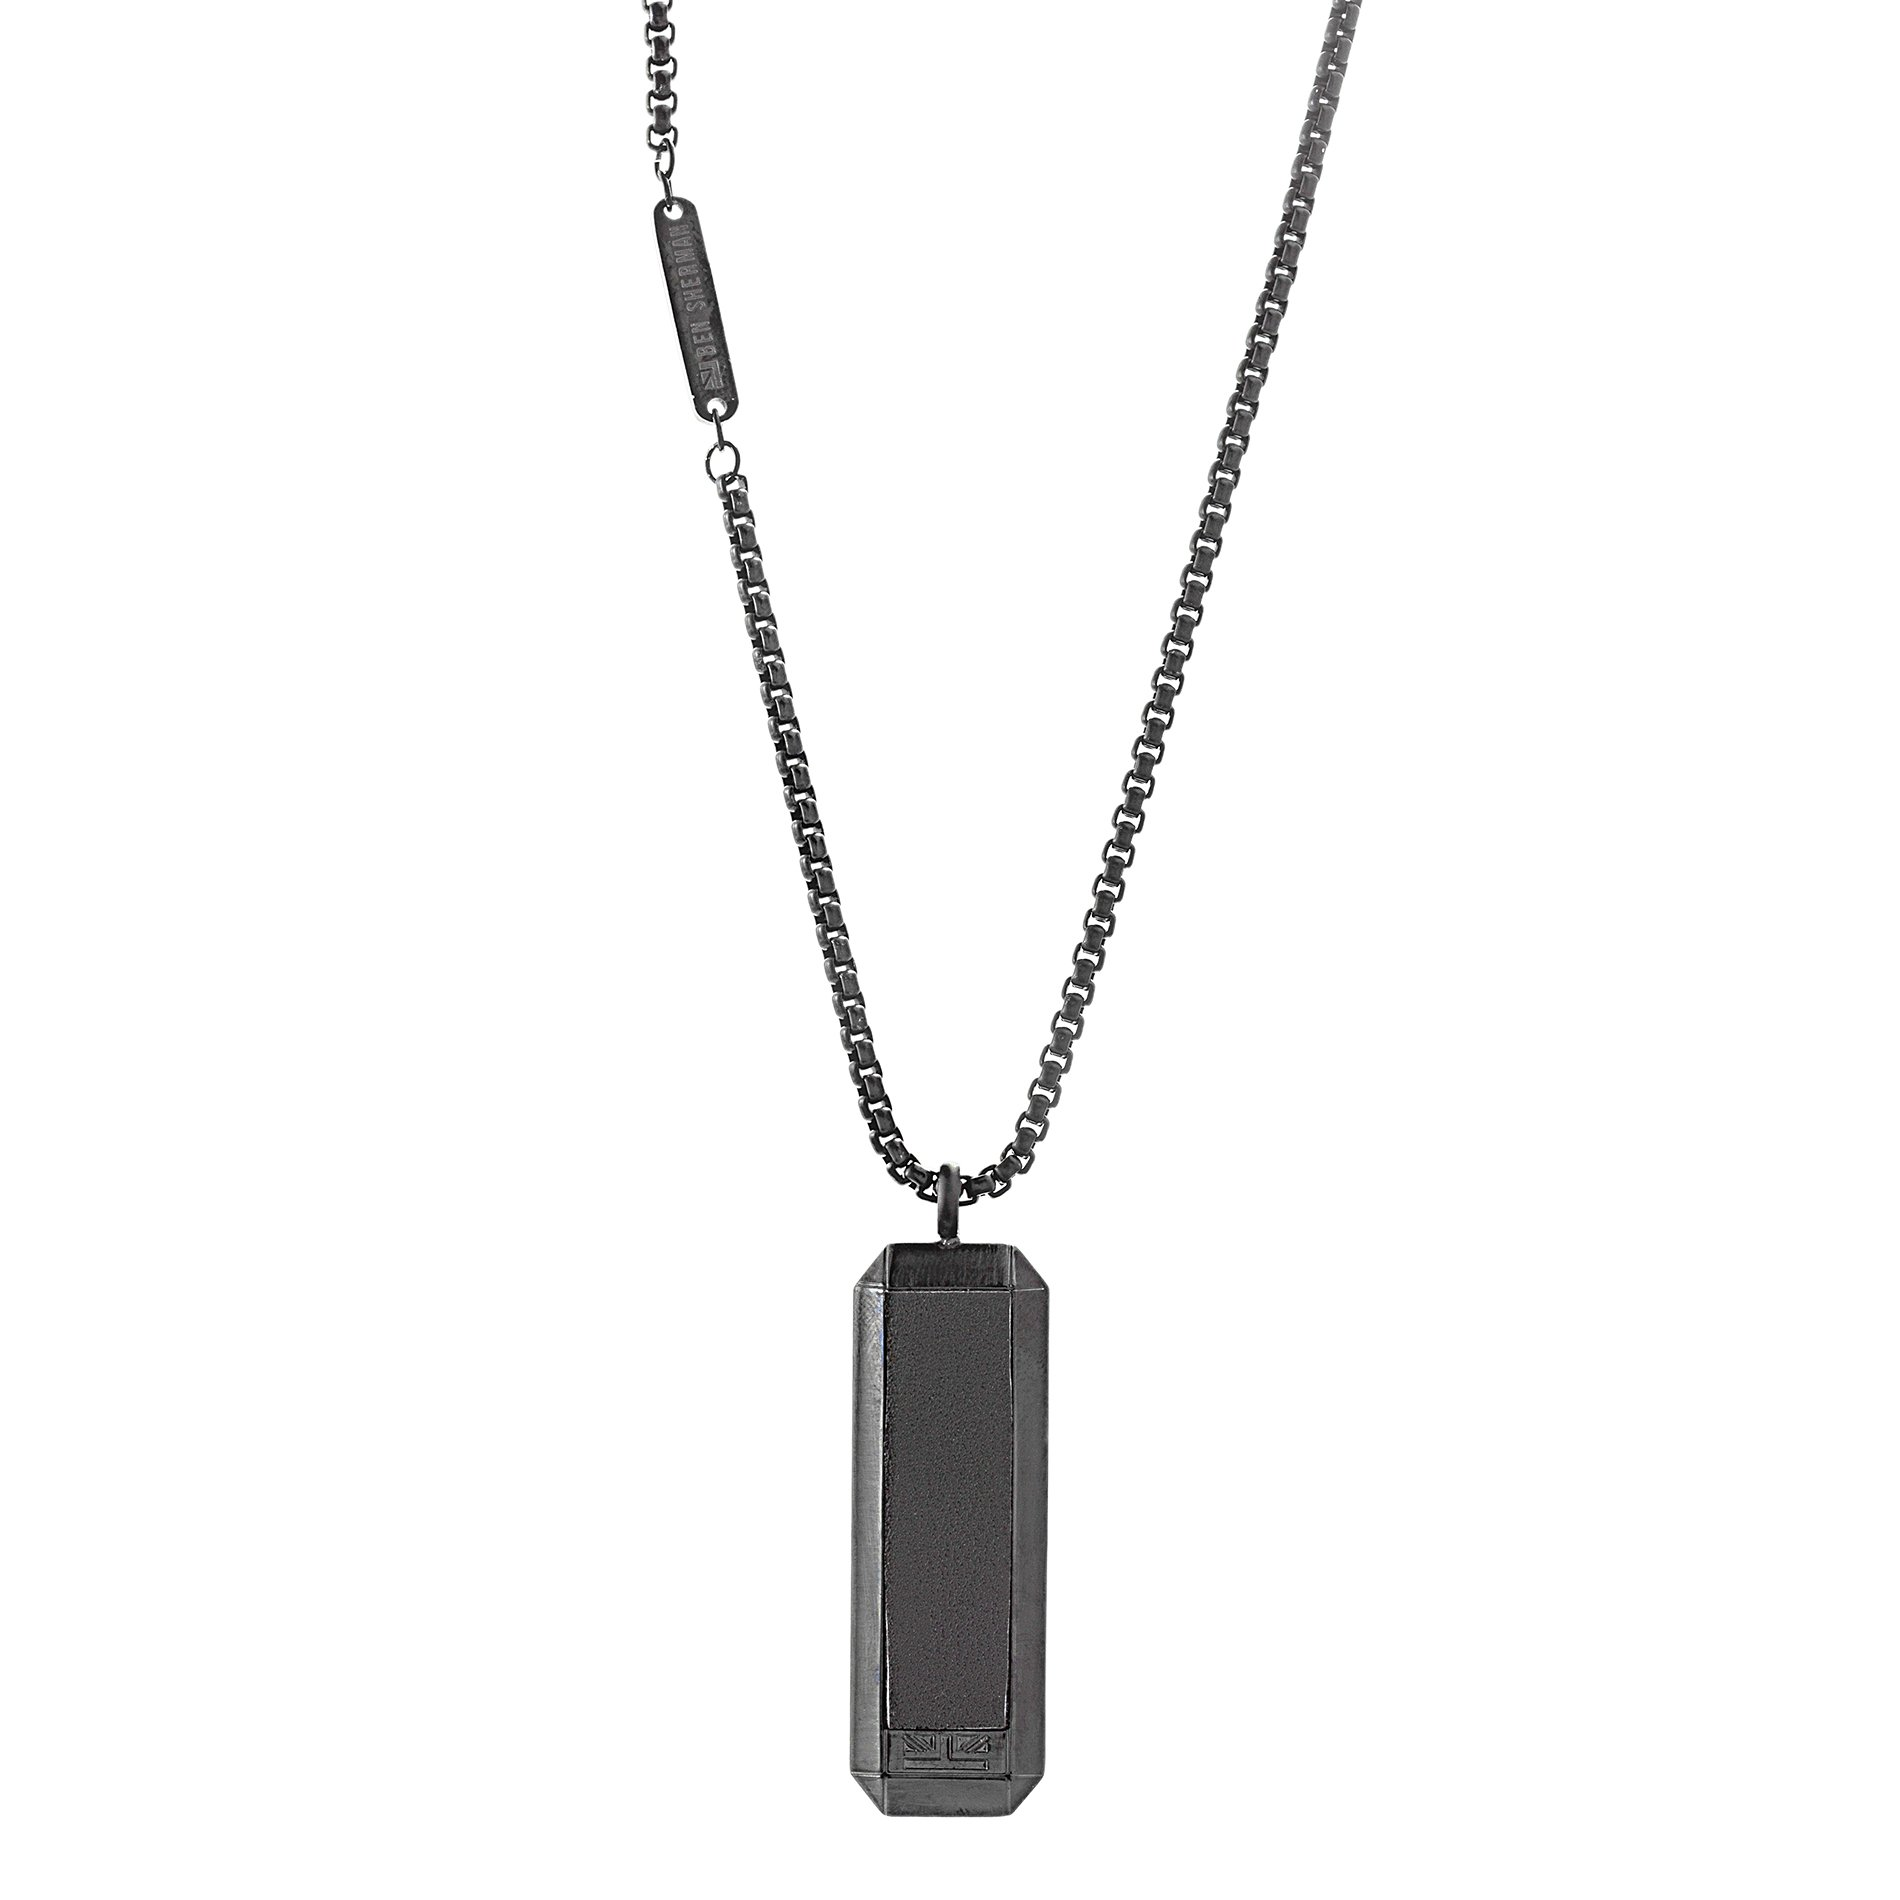 Ben Sherman Men's Black Leather Dog Tag Necklace with Stainless Steel Black IP Box Chain, 26